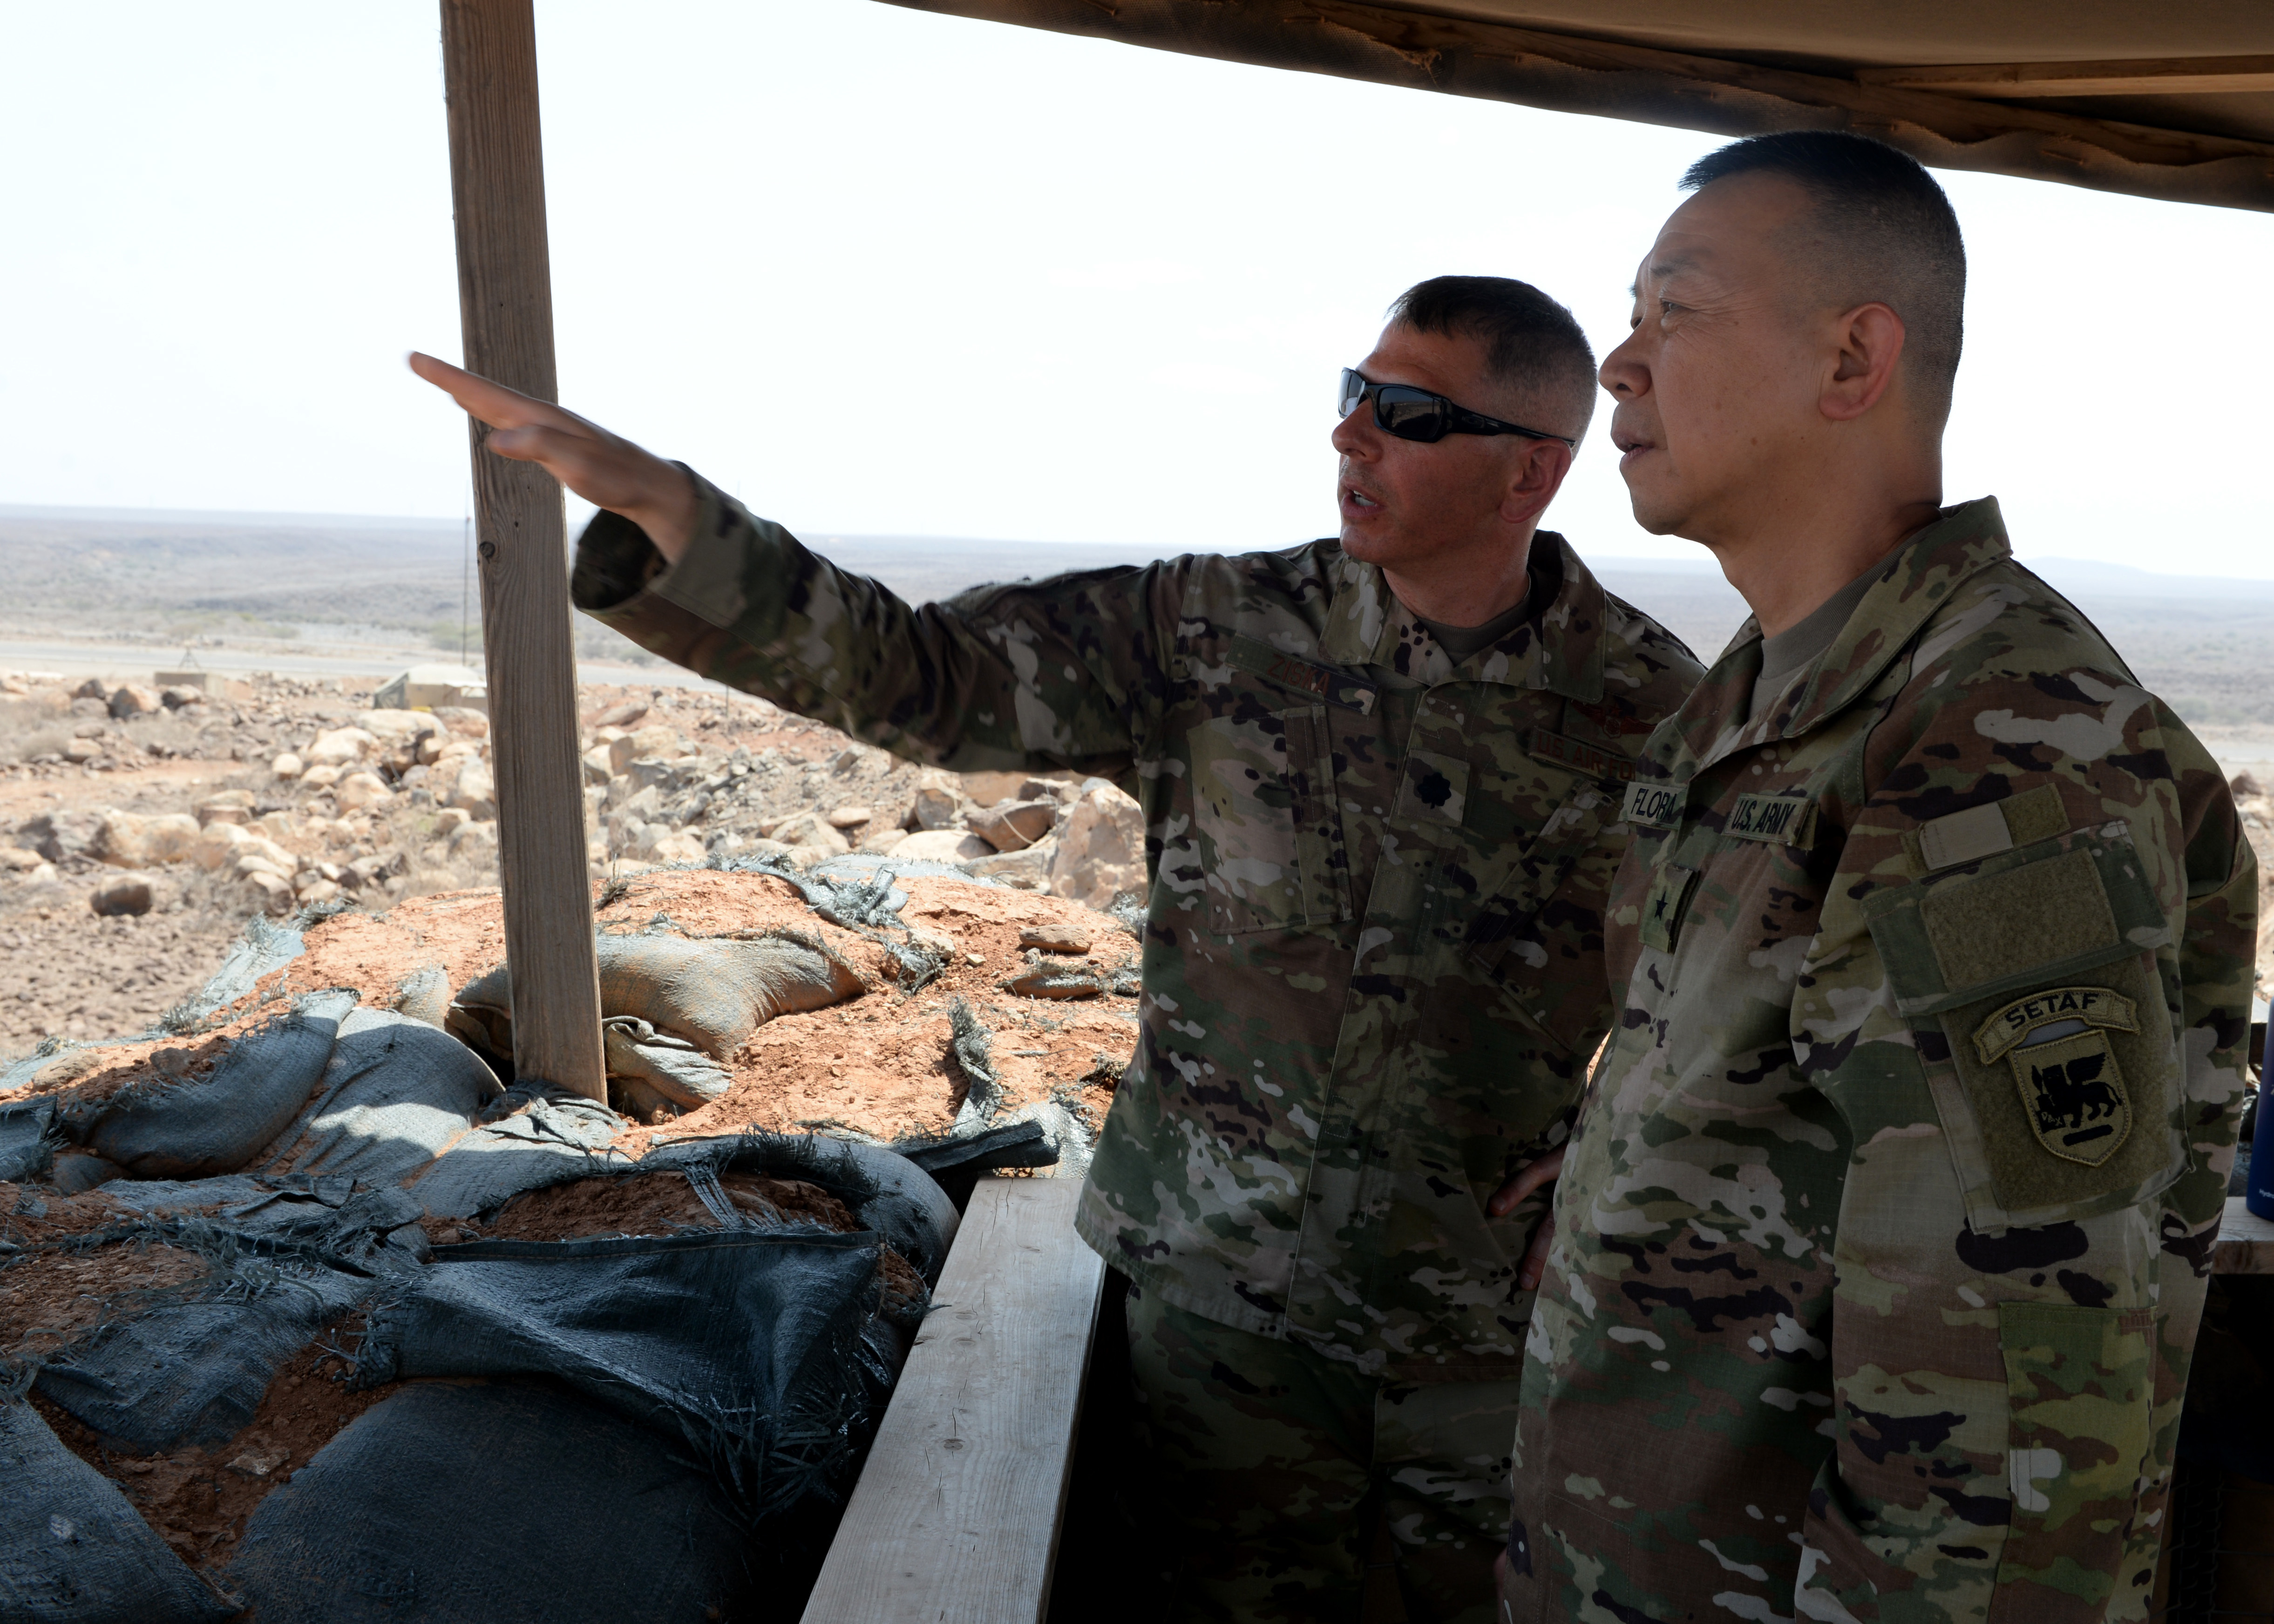 U.S. Army Brig. Gen. Lapthe C. Flora, right, deputy commanding general of U.S. Army Africa (USARAF), listens to U.S. Air Force Lt. Col. Michael Ziska, director of operations for the 870th Air Expeditionary Squadron, supporting Combined Joint Task Force-Horn of Africa (CJTF-HOA), during Flora's visit to a forward operation location in East Africa, March 7, 2019. Flora visited to familiarize himself with the U.S. Army units embedded in CJTF-HOA and to help foster a better partnership between USARAF and CJTF-HOA. (U.S. Air Force photo by Staff Sgt. Franklin R. Ramos)